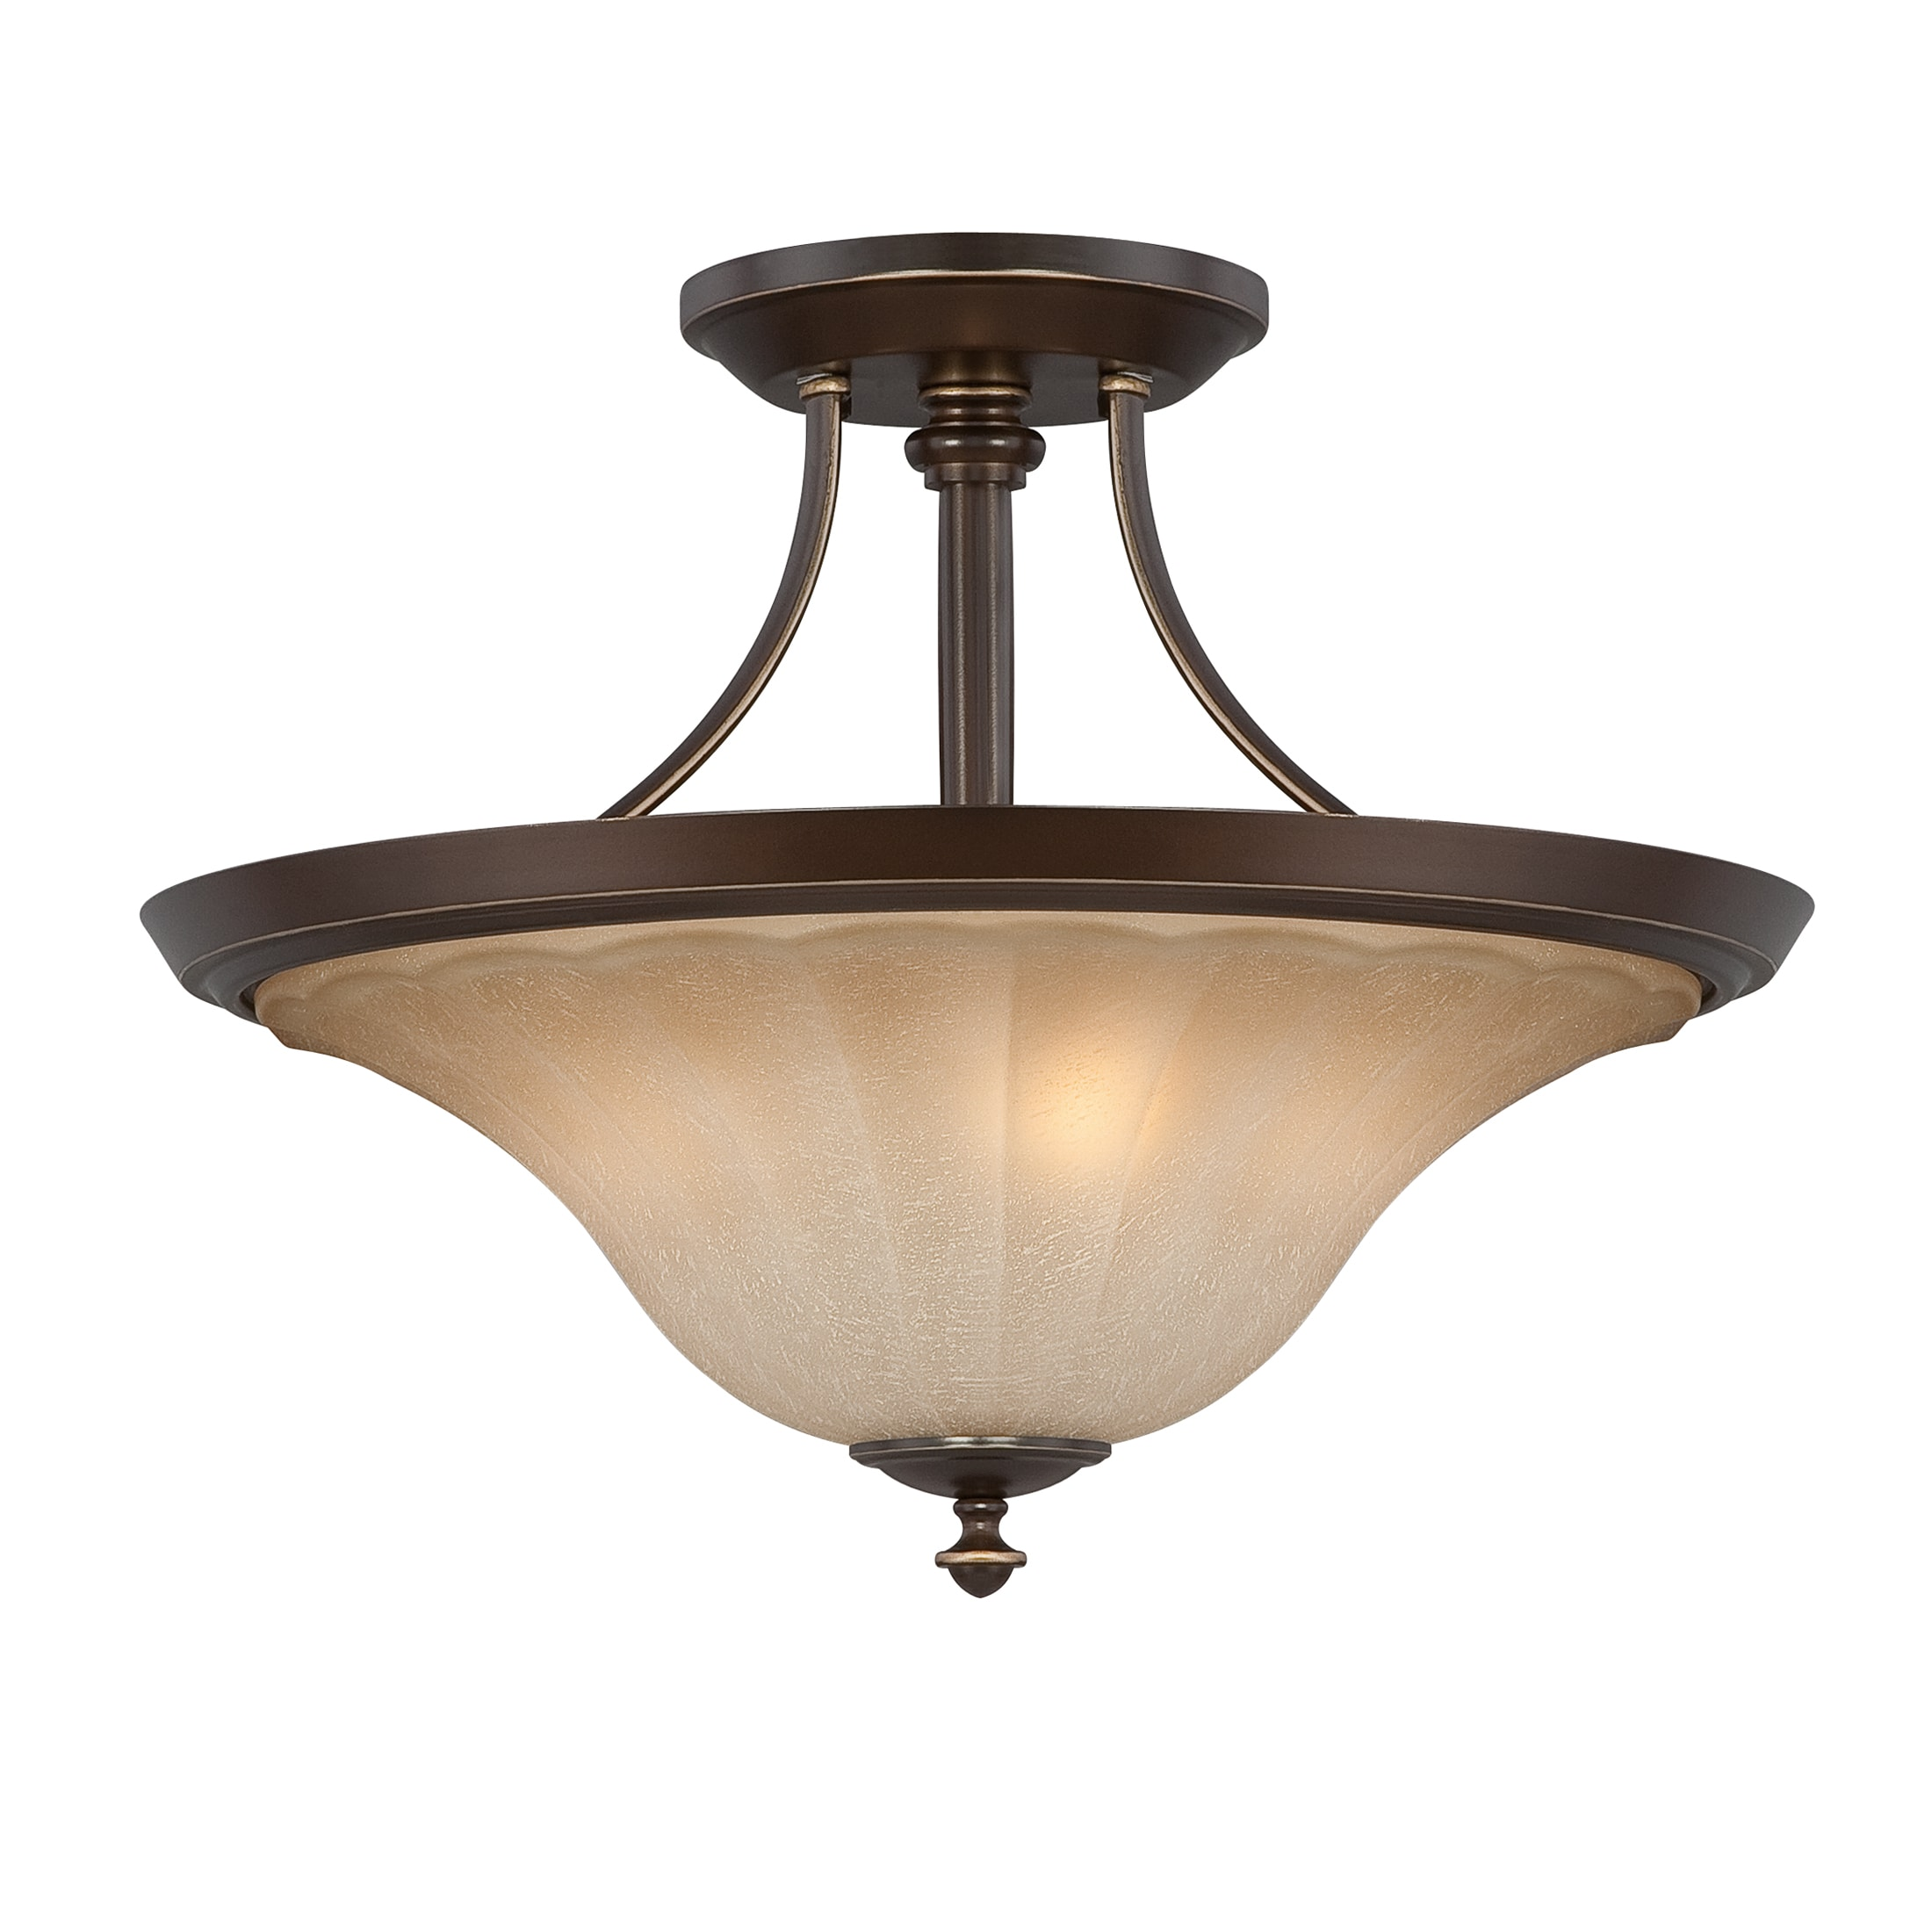 Quoizel 'Aliza' Semi-Flush Mount